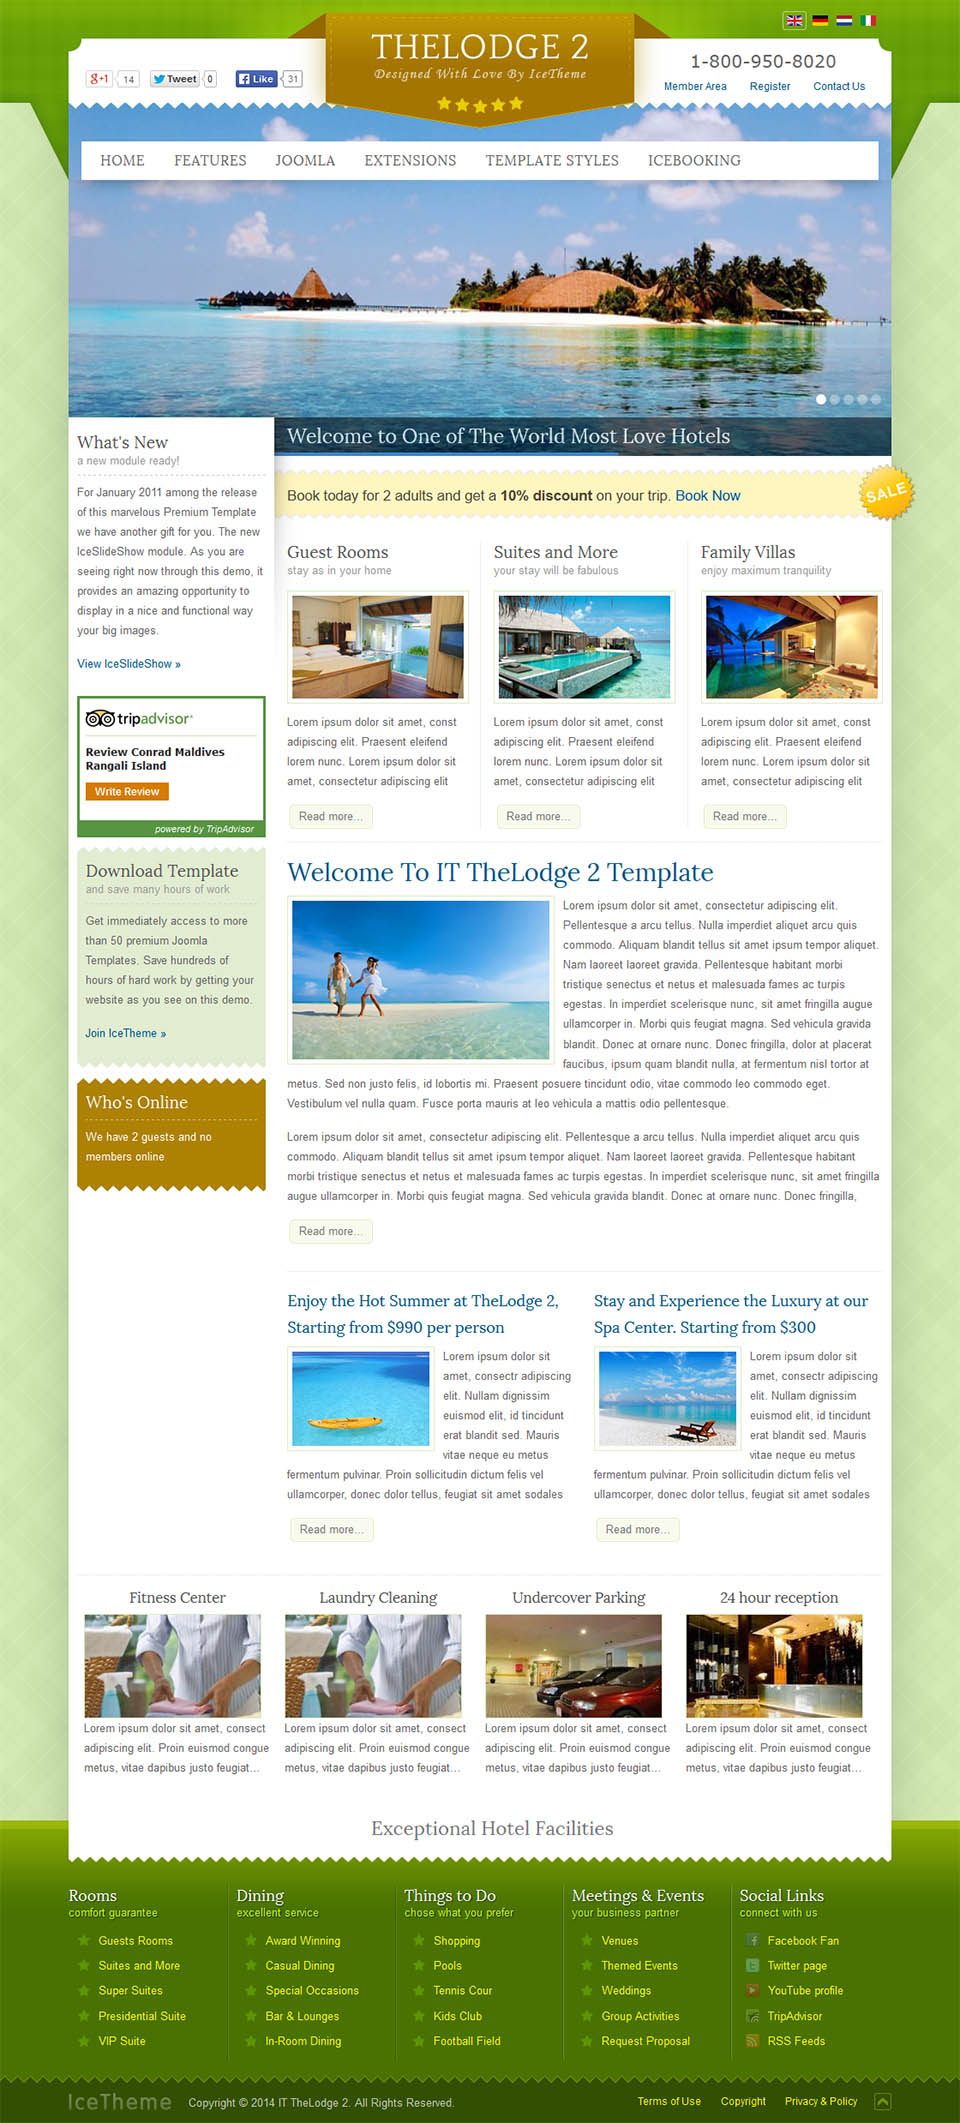 it thelodge 2 joomla online booking template for hotel.html